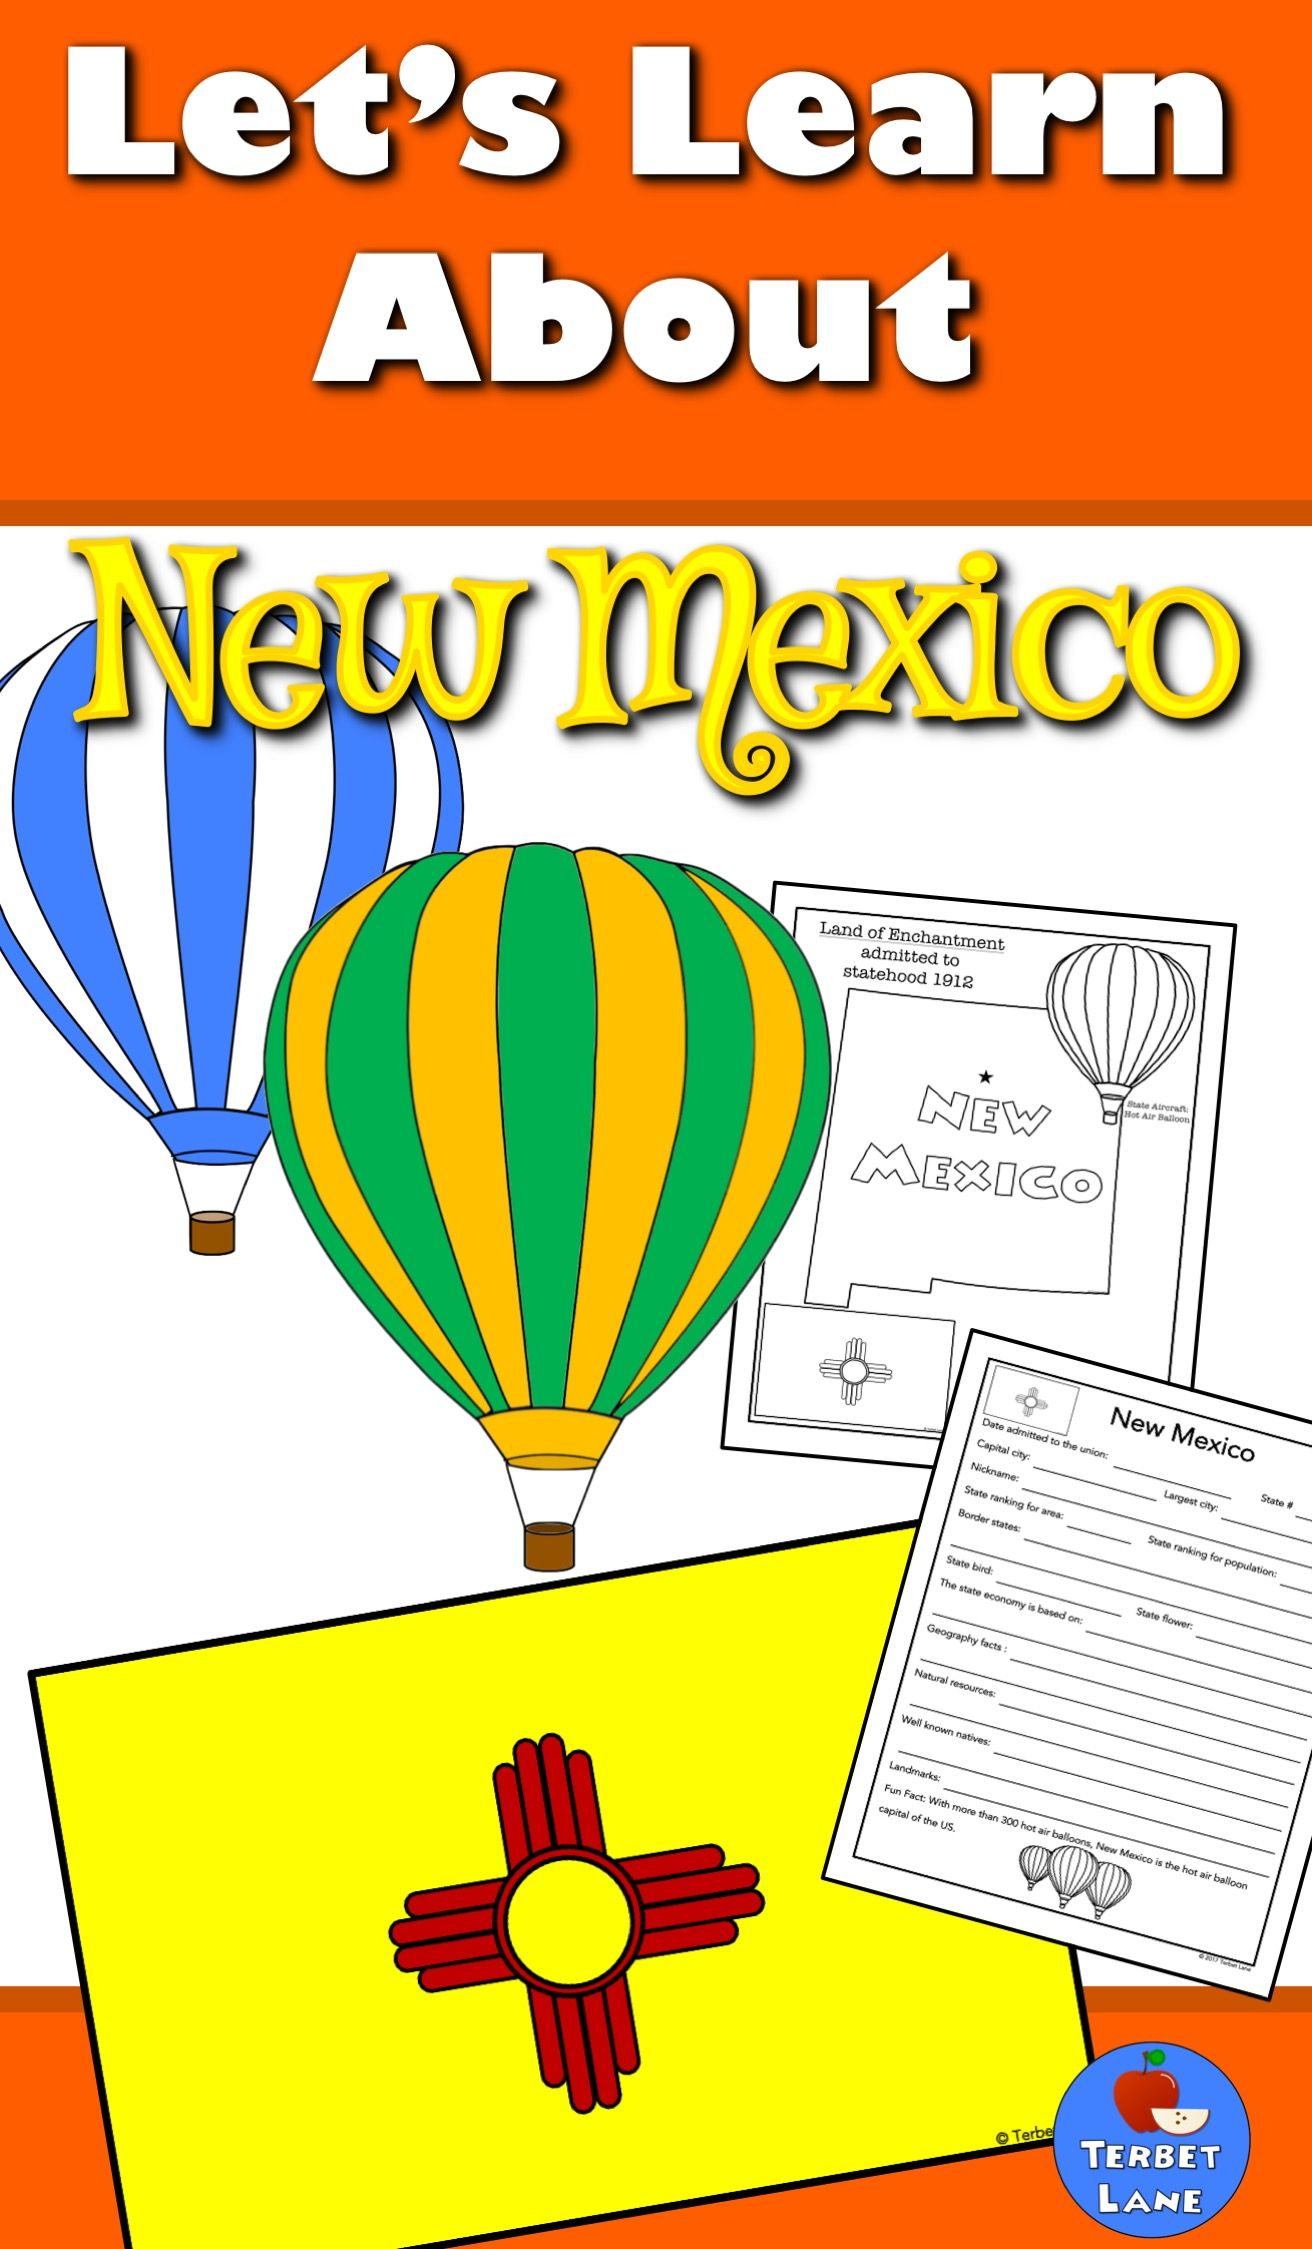 New Mexico History And Symbols Unit Study